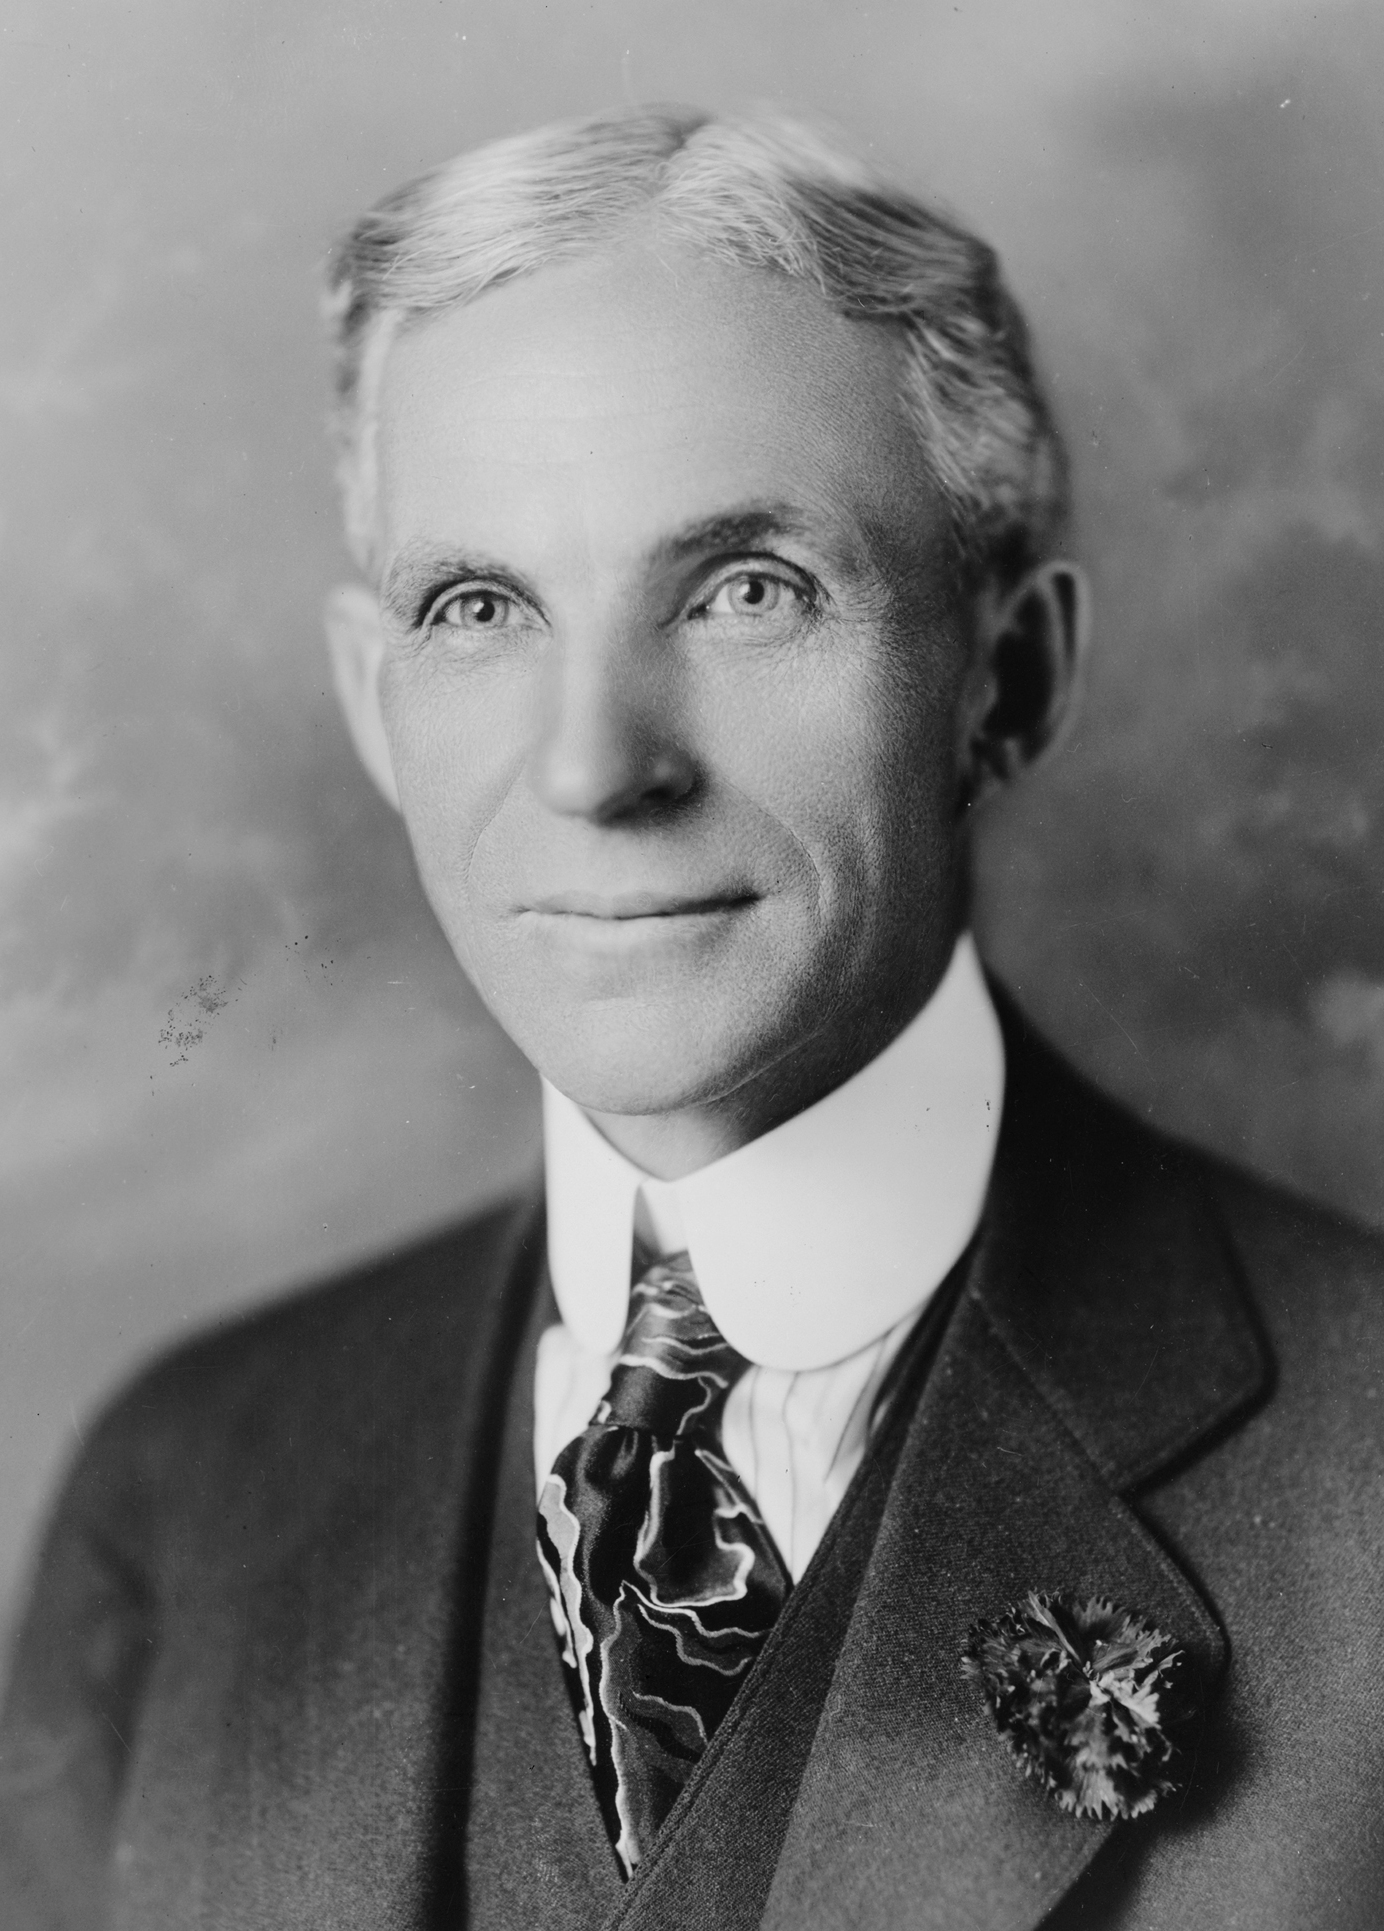 Henry Ford élete (The life of Henry Ford)